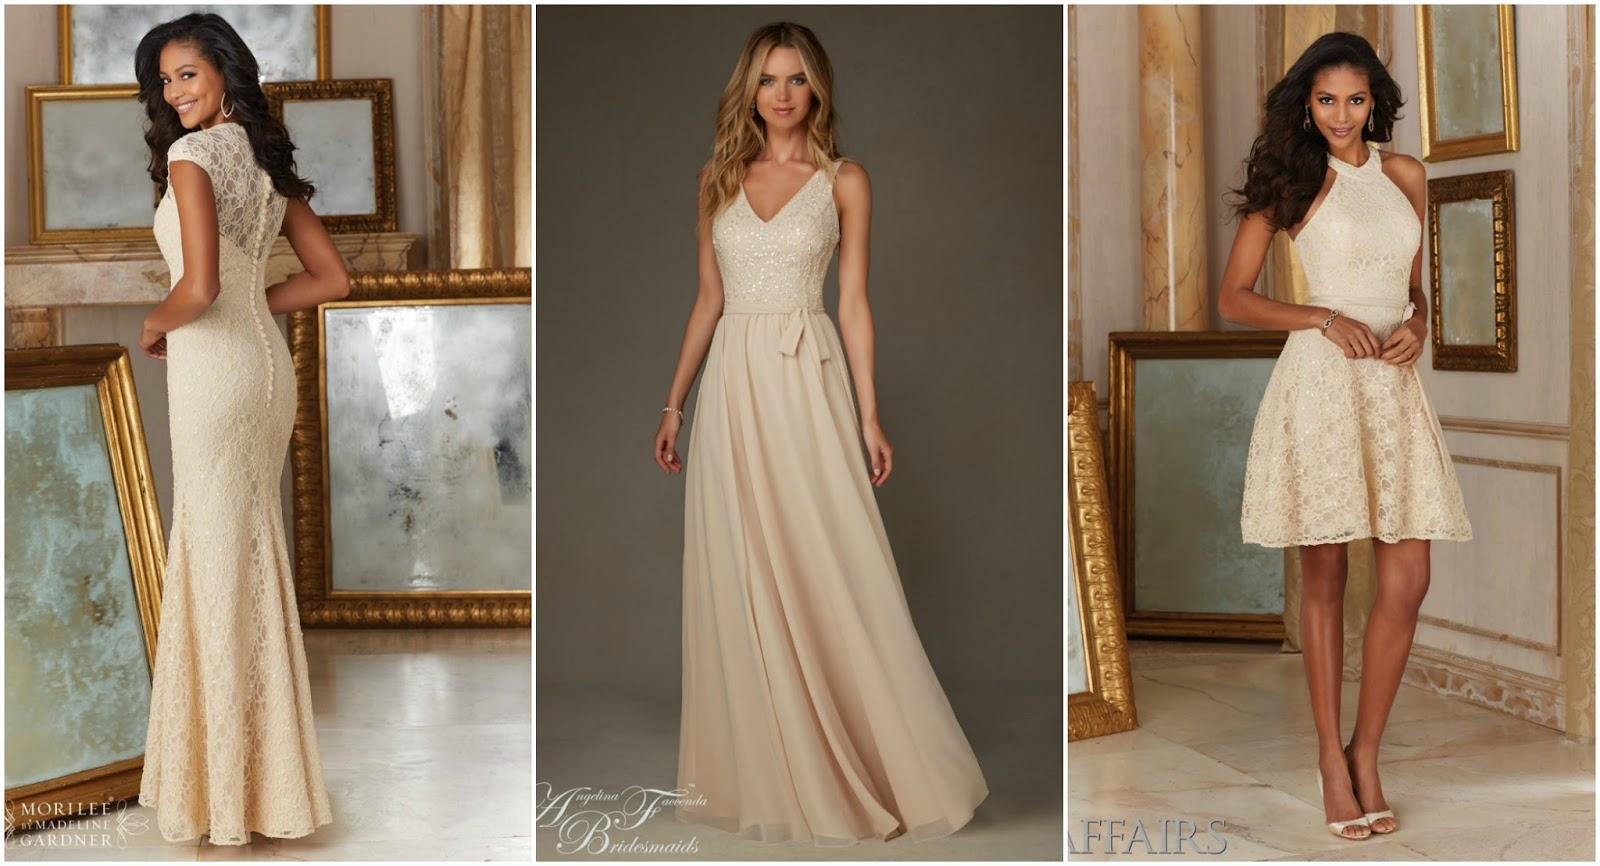 Brides of america online store champagne latte for the champagne latte for the bridesmaids dresses that is ombrellifo Image collections